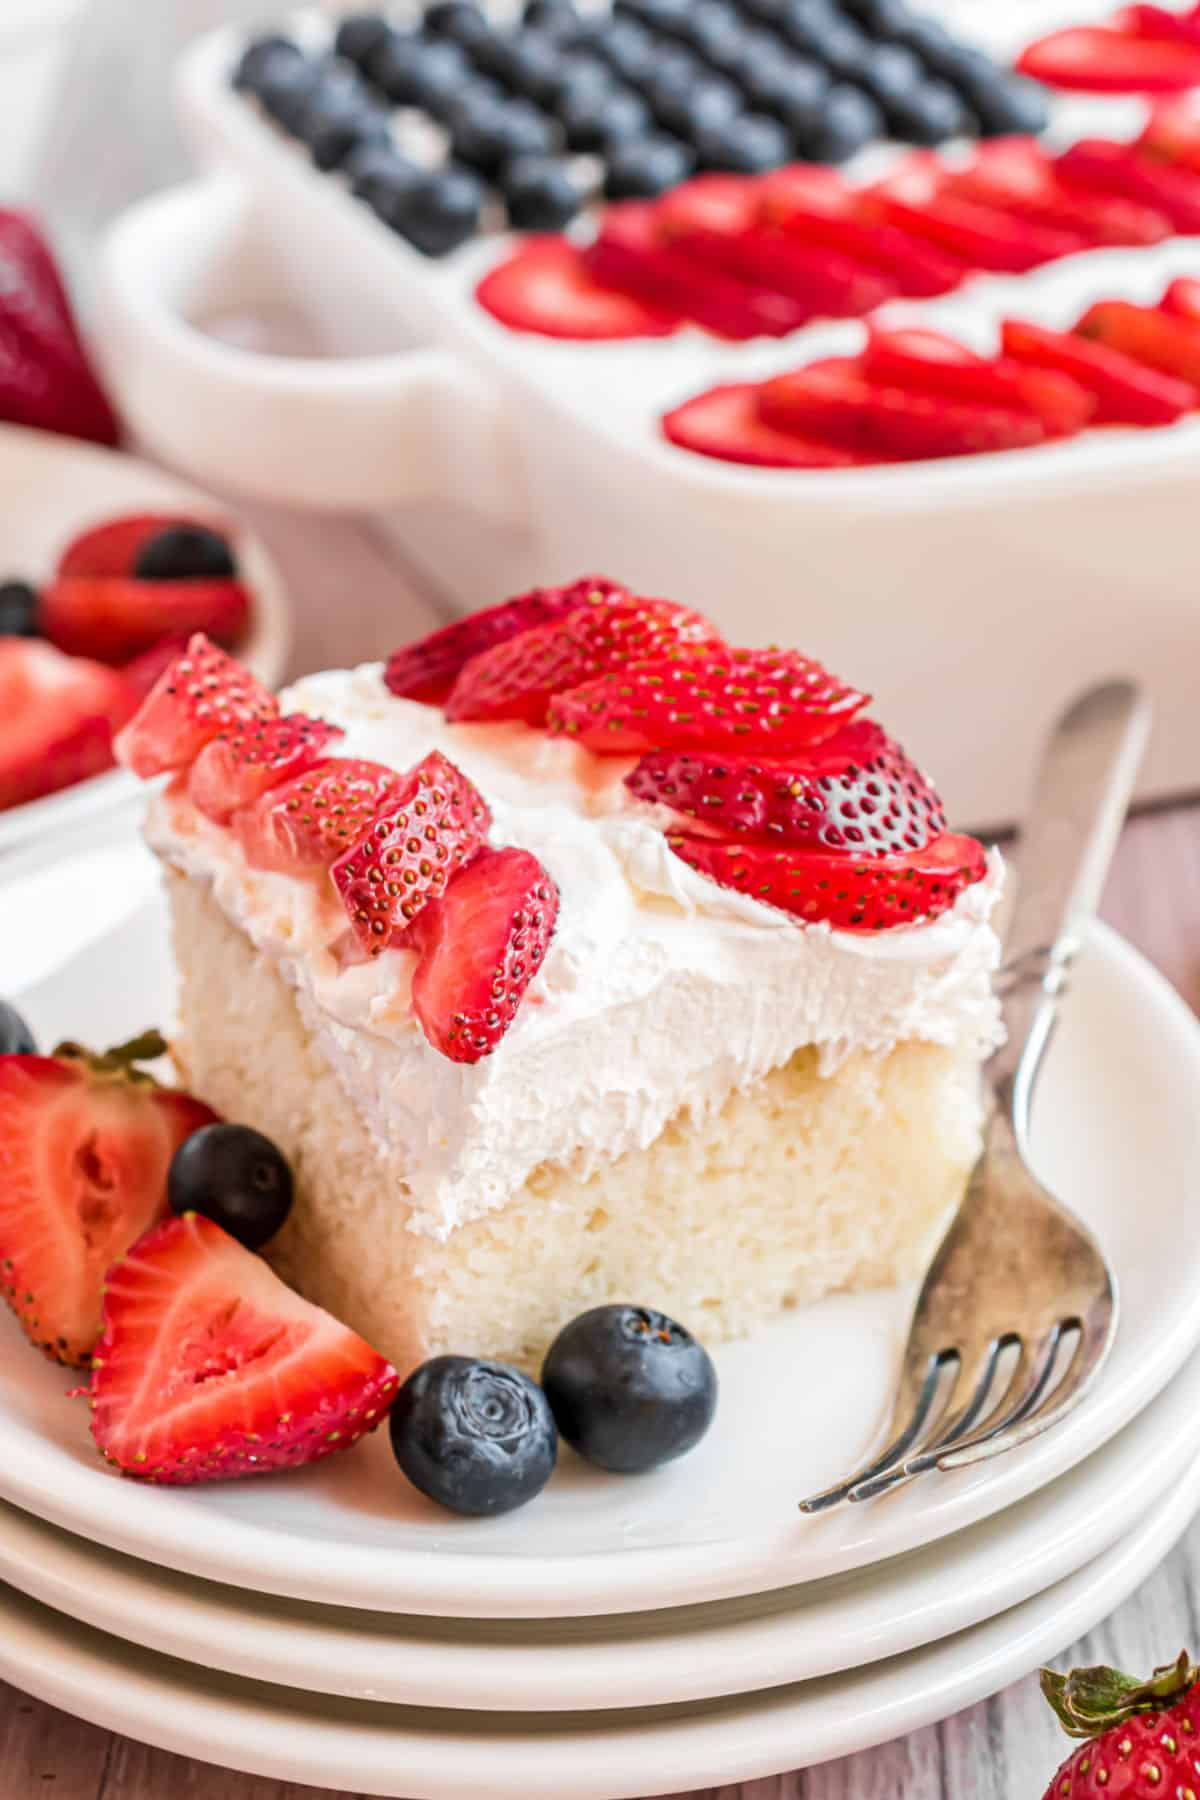 Slice of white cake with whipped cream and berries to resemble a flag.